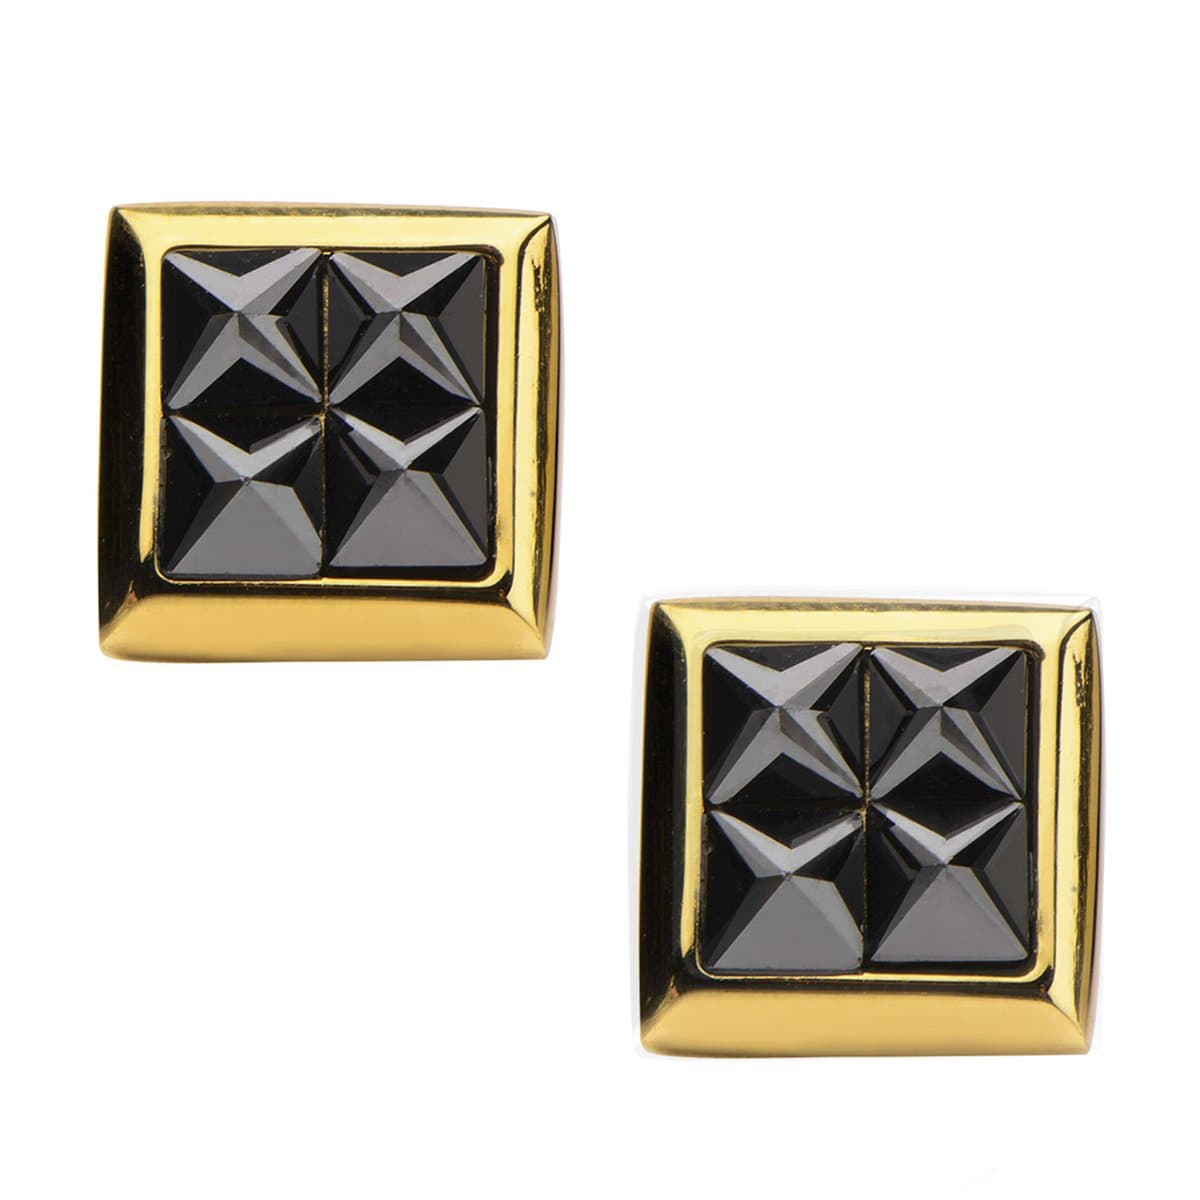 Gold Stainless Steel Four Black Pyramid Crystals Square Studs Earrings